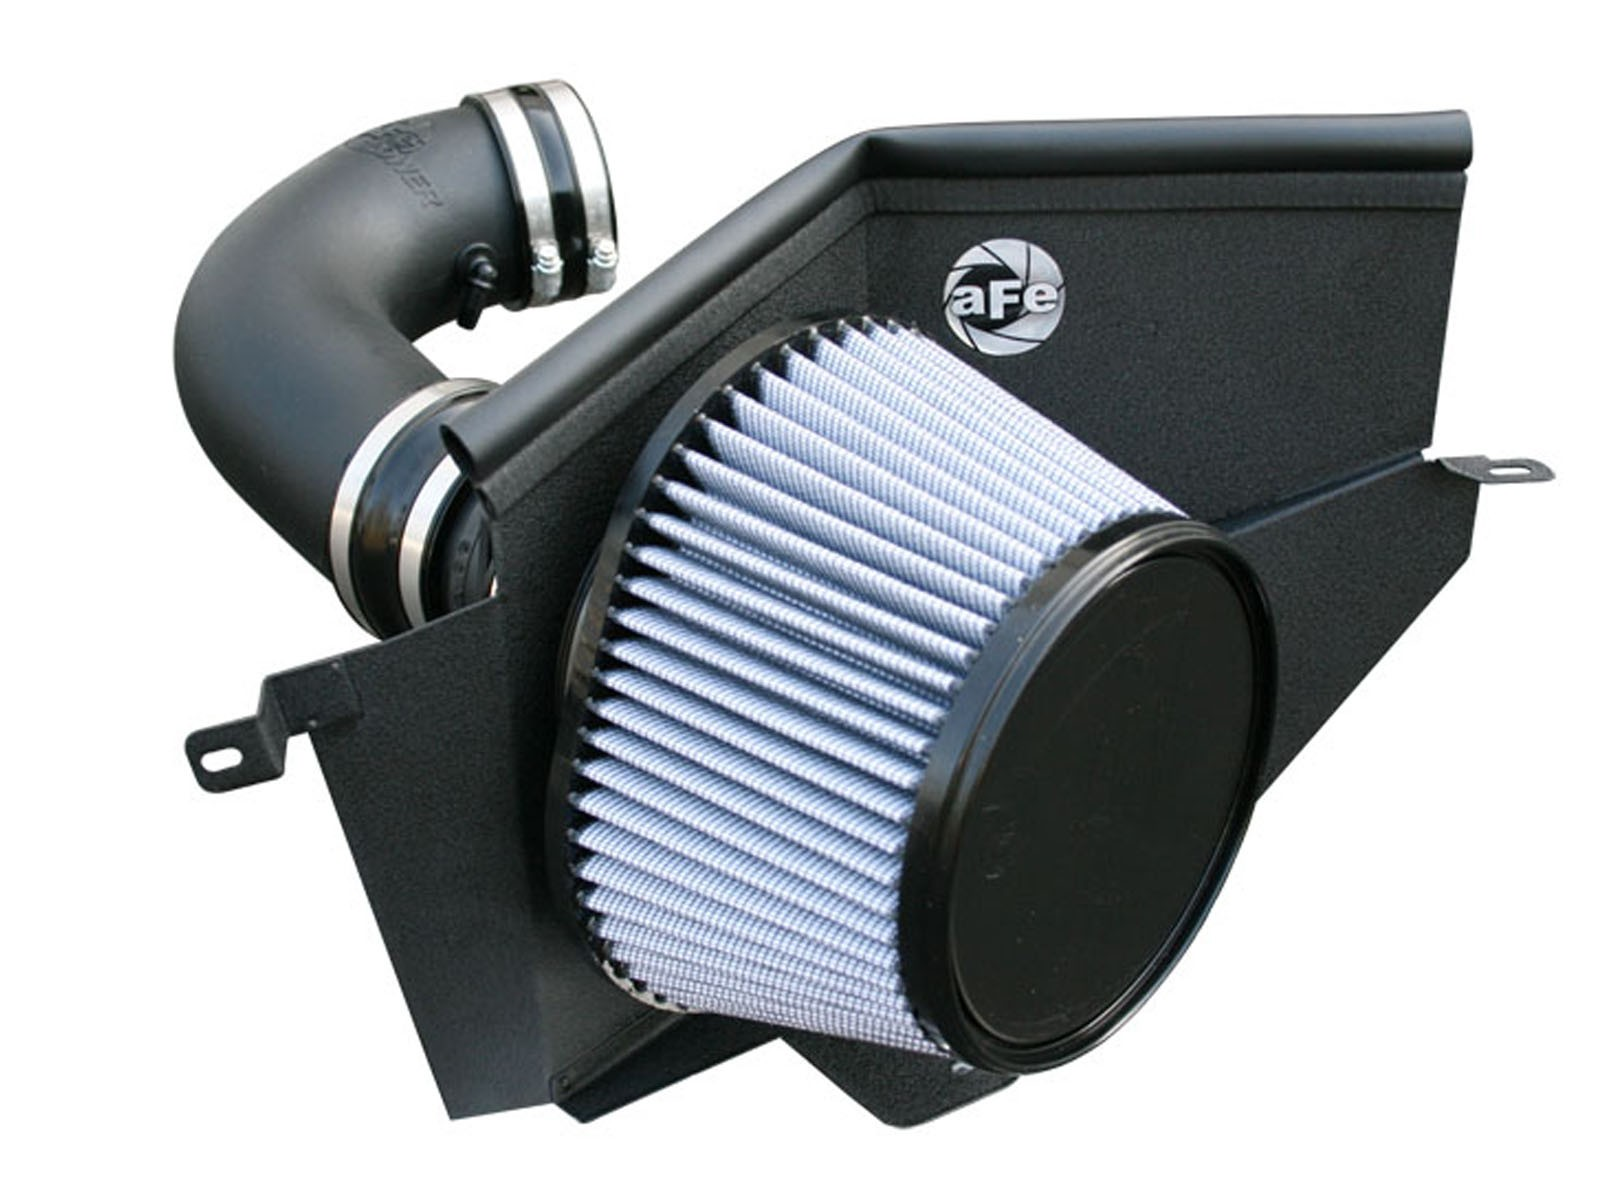 aFe POWER 51-11582 Magnum FORCE Stage-2 Pro DRY S Cold Air Intake System